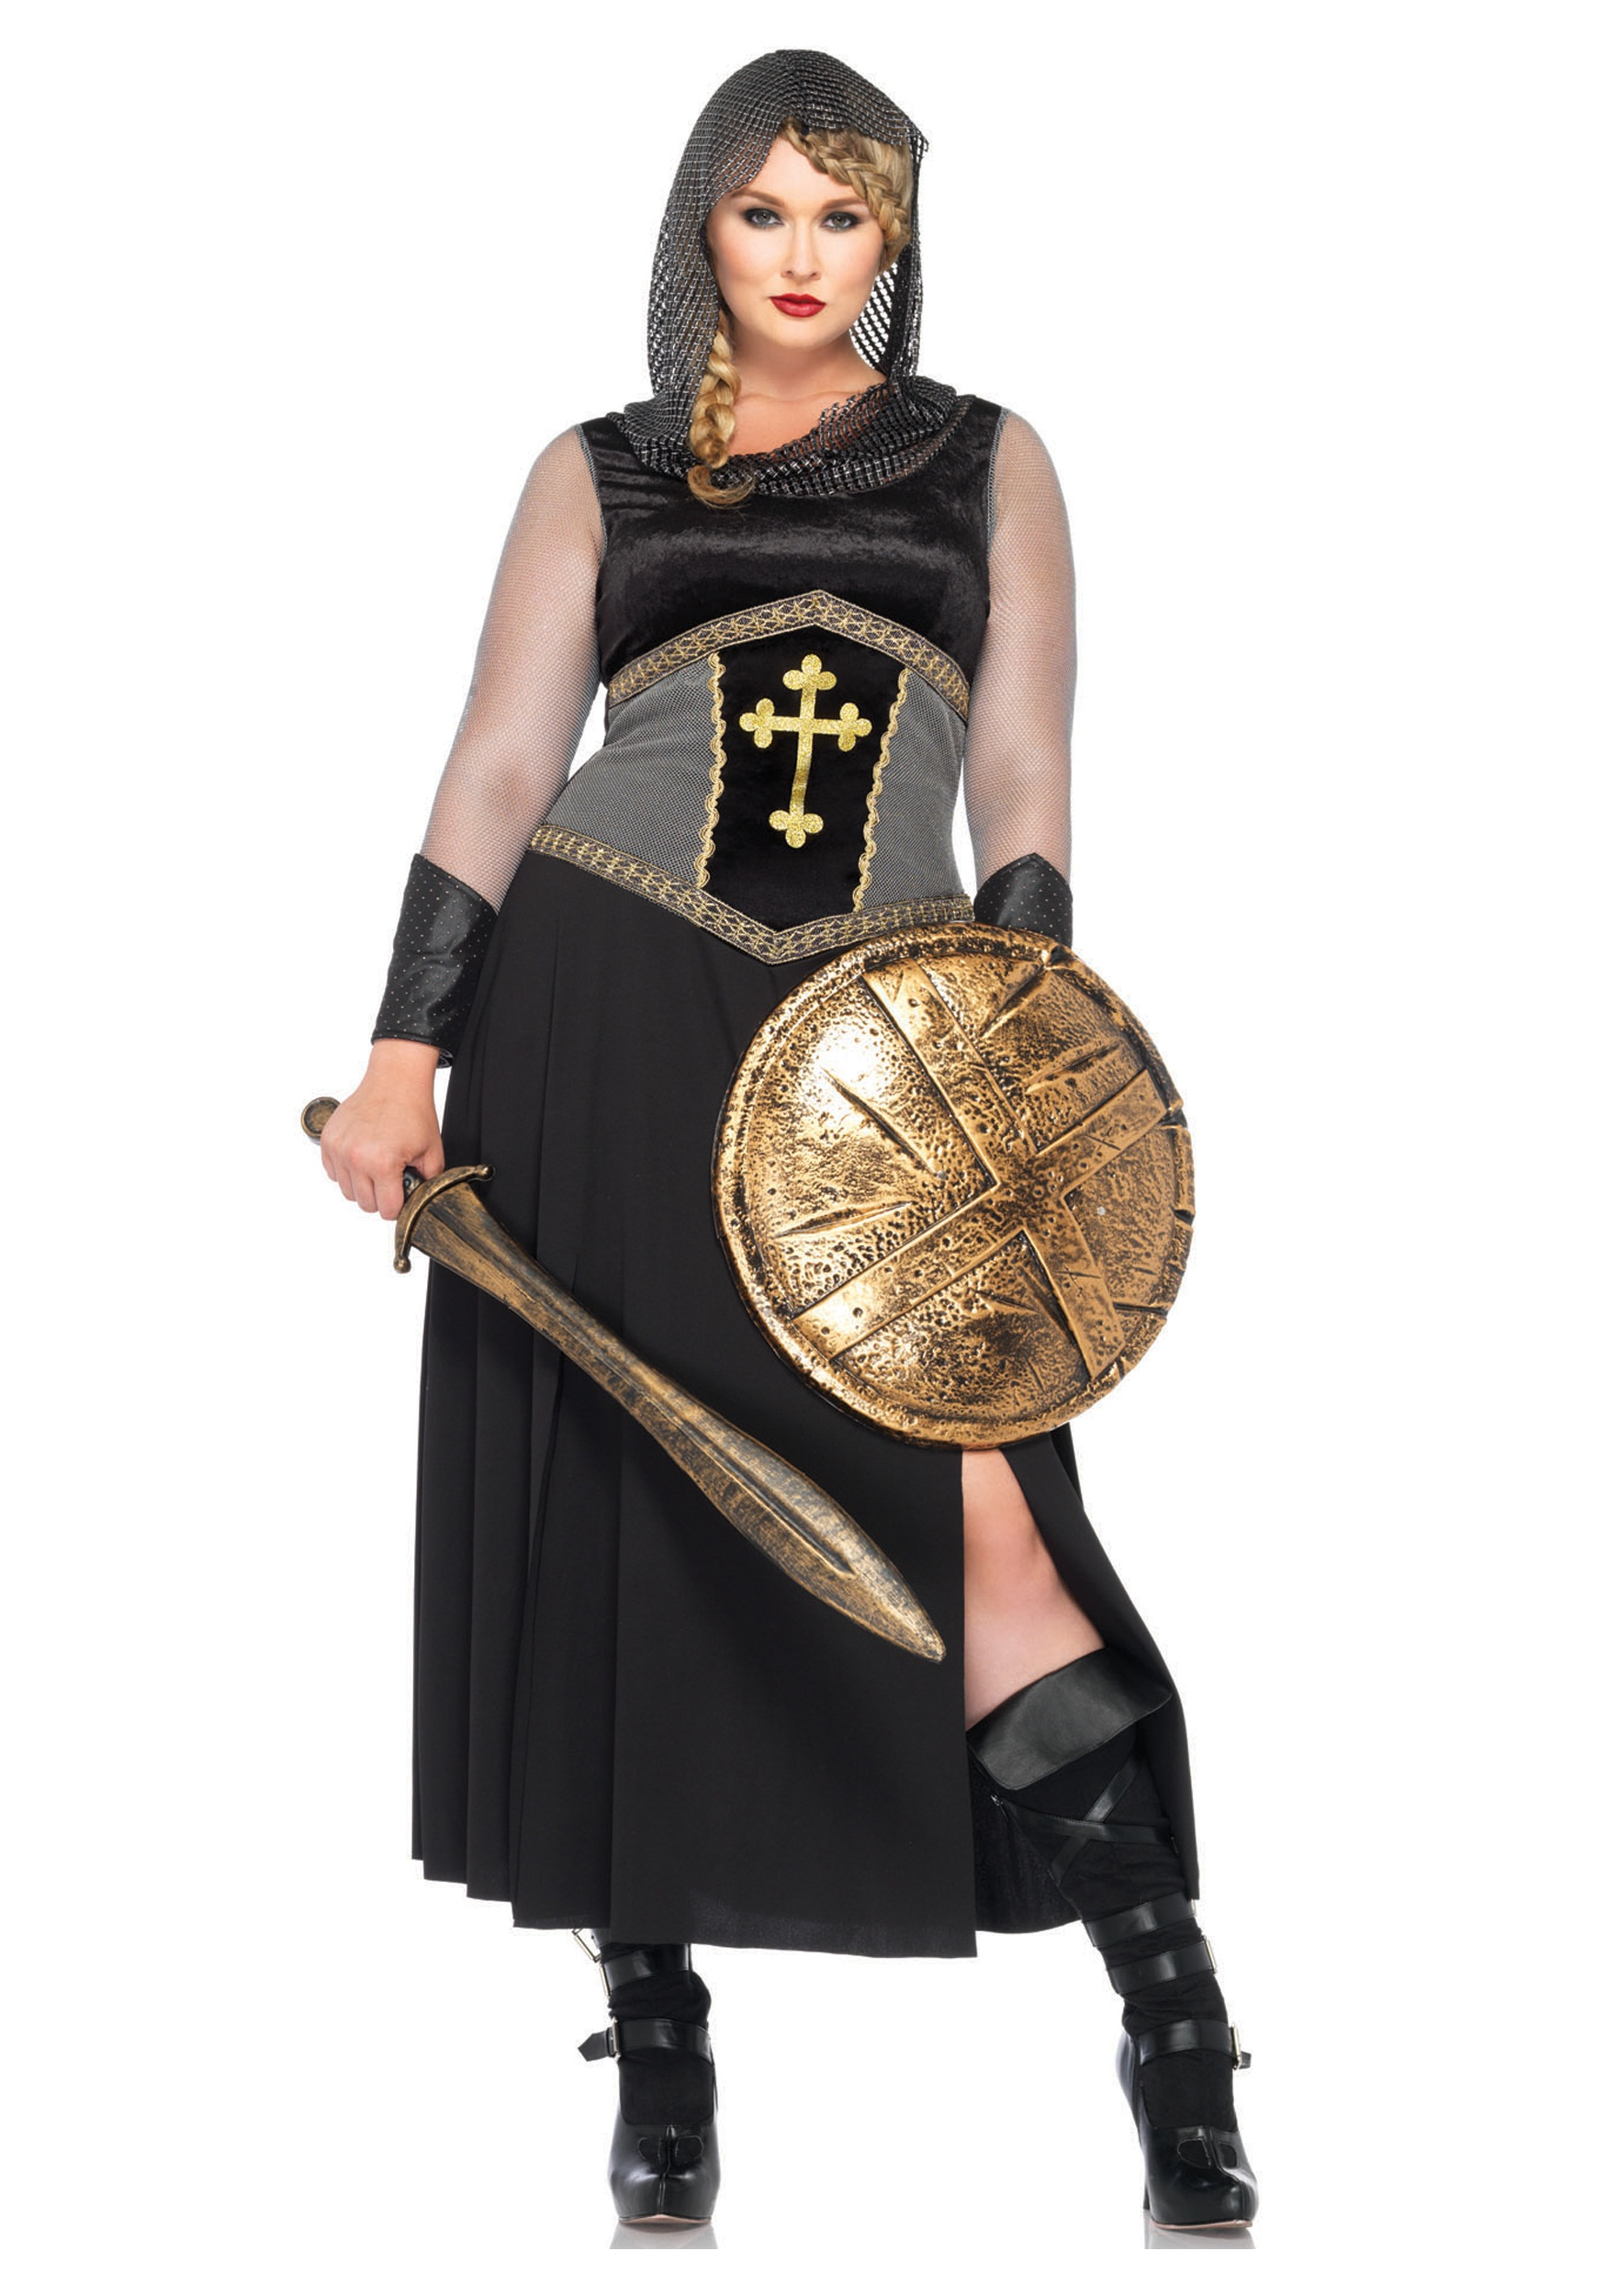 Plus Size Joan of Arc  sc 1 st  Halloween Costumes & Plus Size Joan of Arc - Halloween Costumes